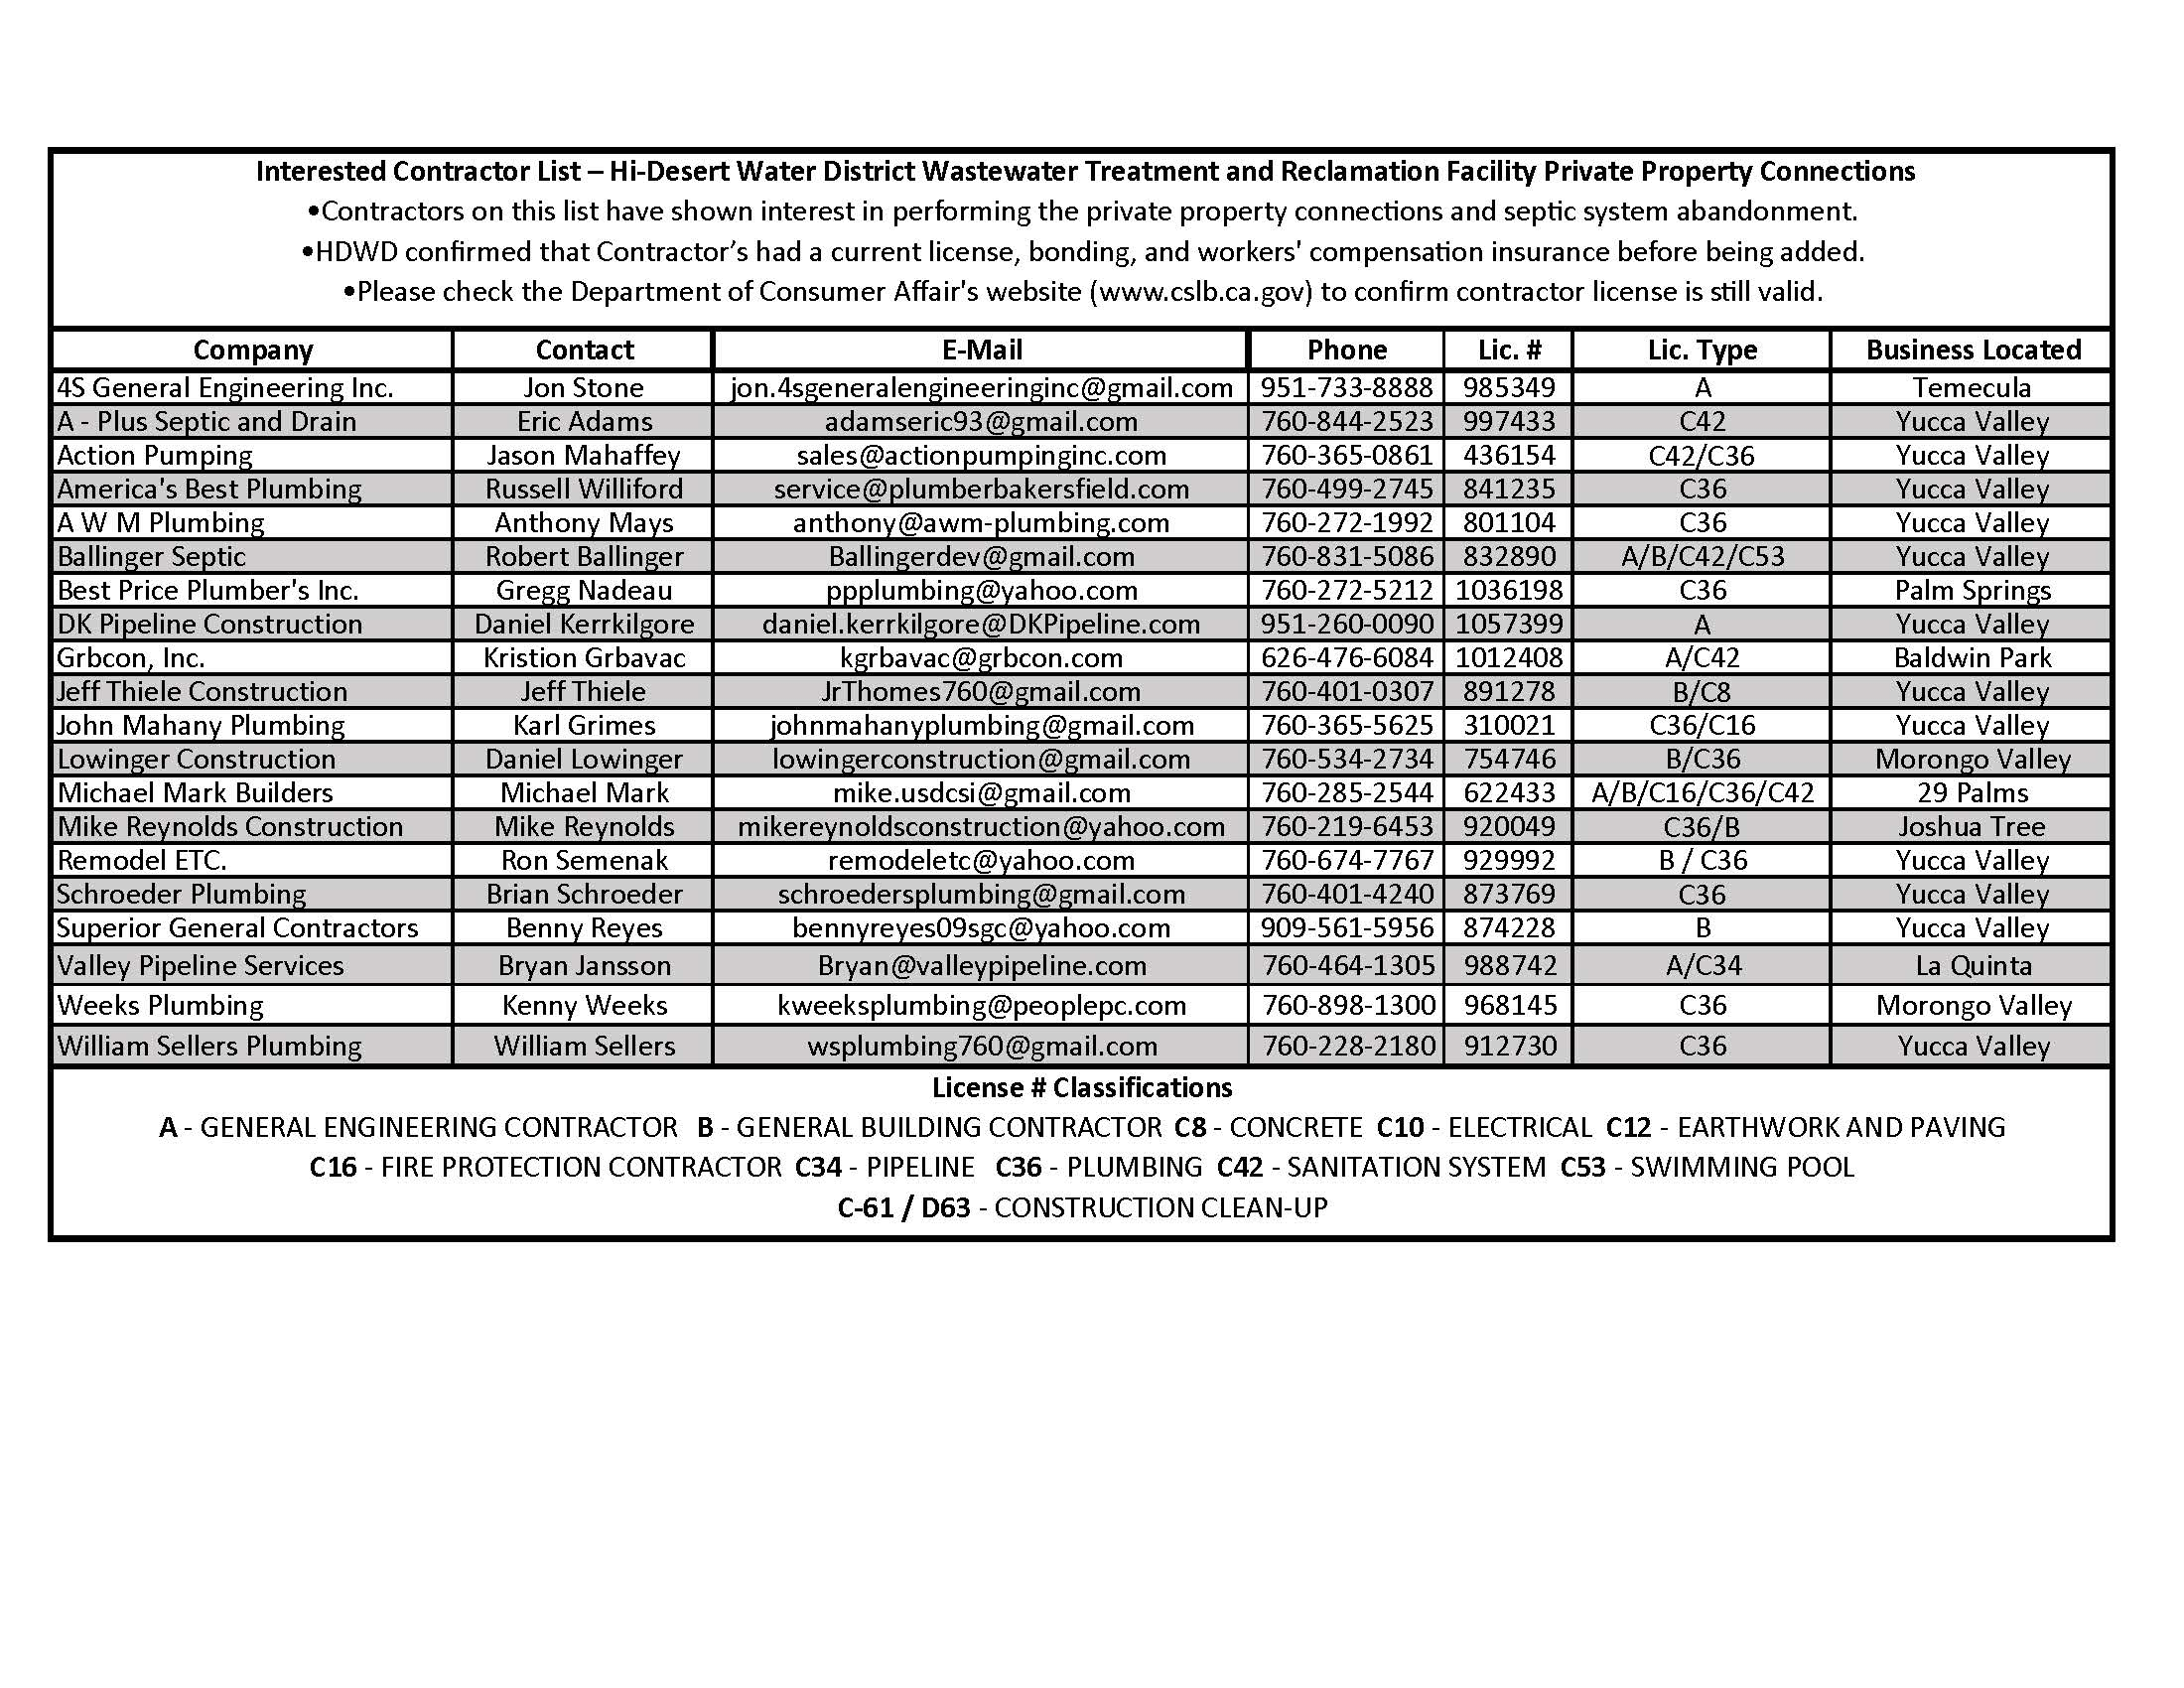 1-23-2020 Interested Contractors List (JPG)_Page_1